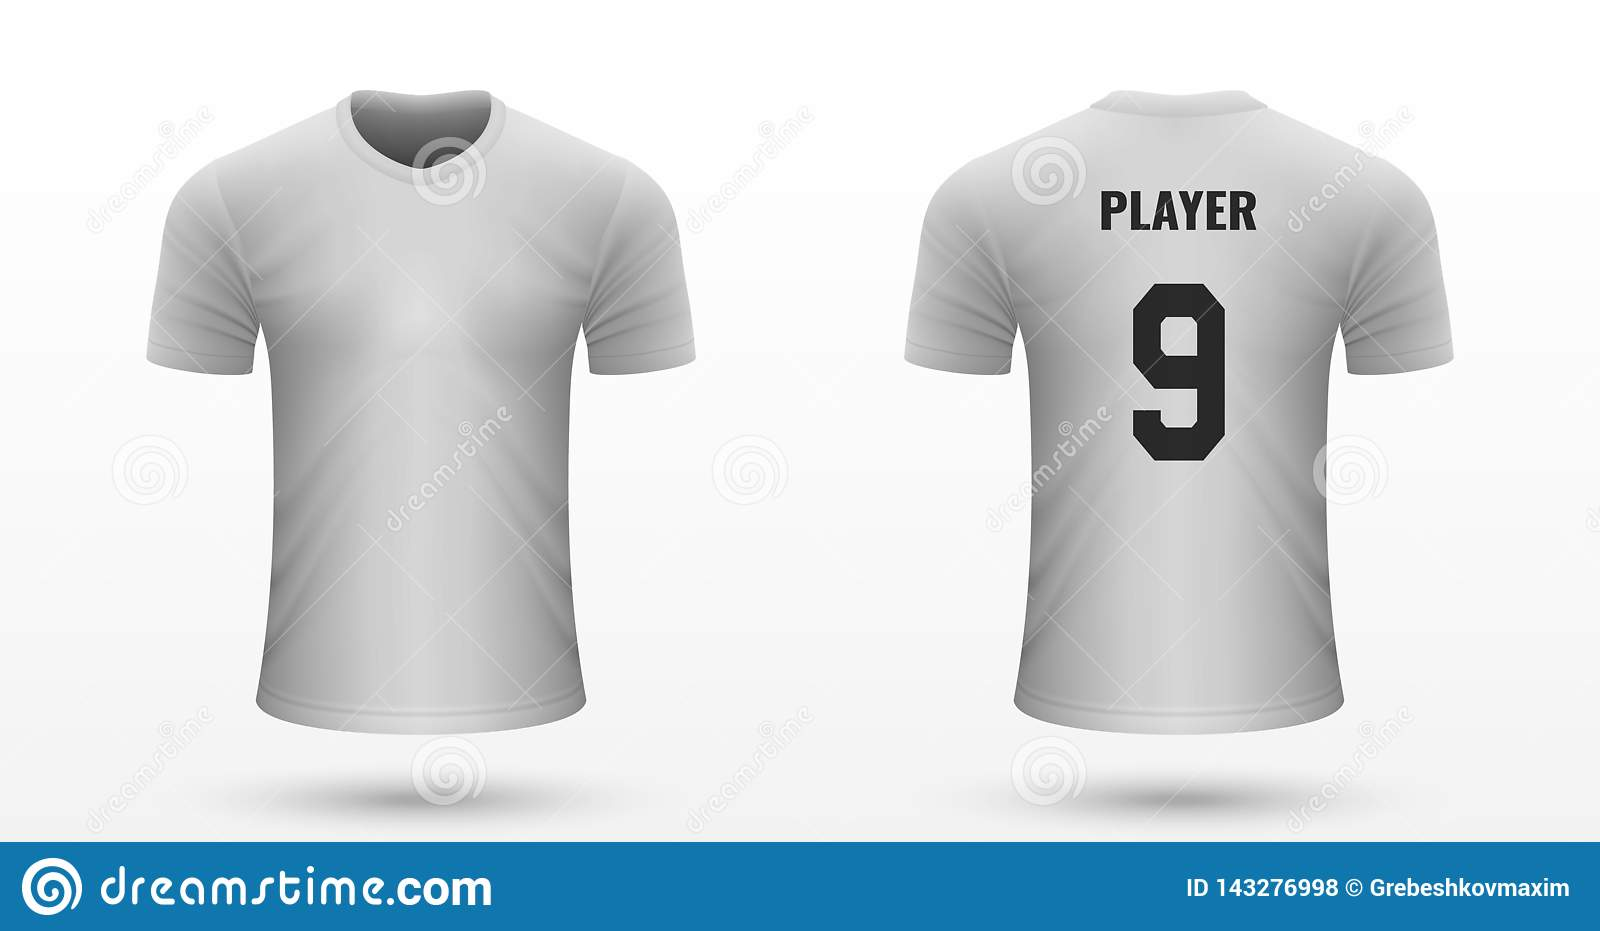 2c963e15f85 Realistic soccer shirt Valencia, jersey template for football kit. Vector  illustration